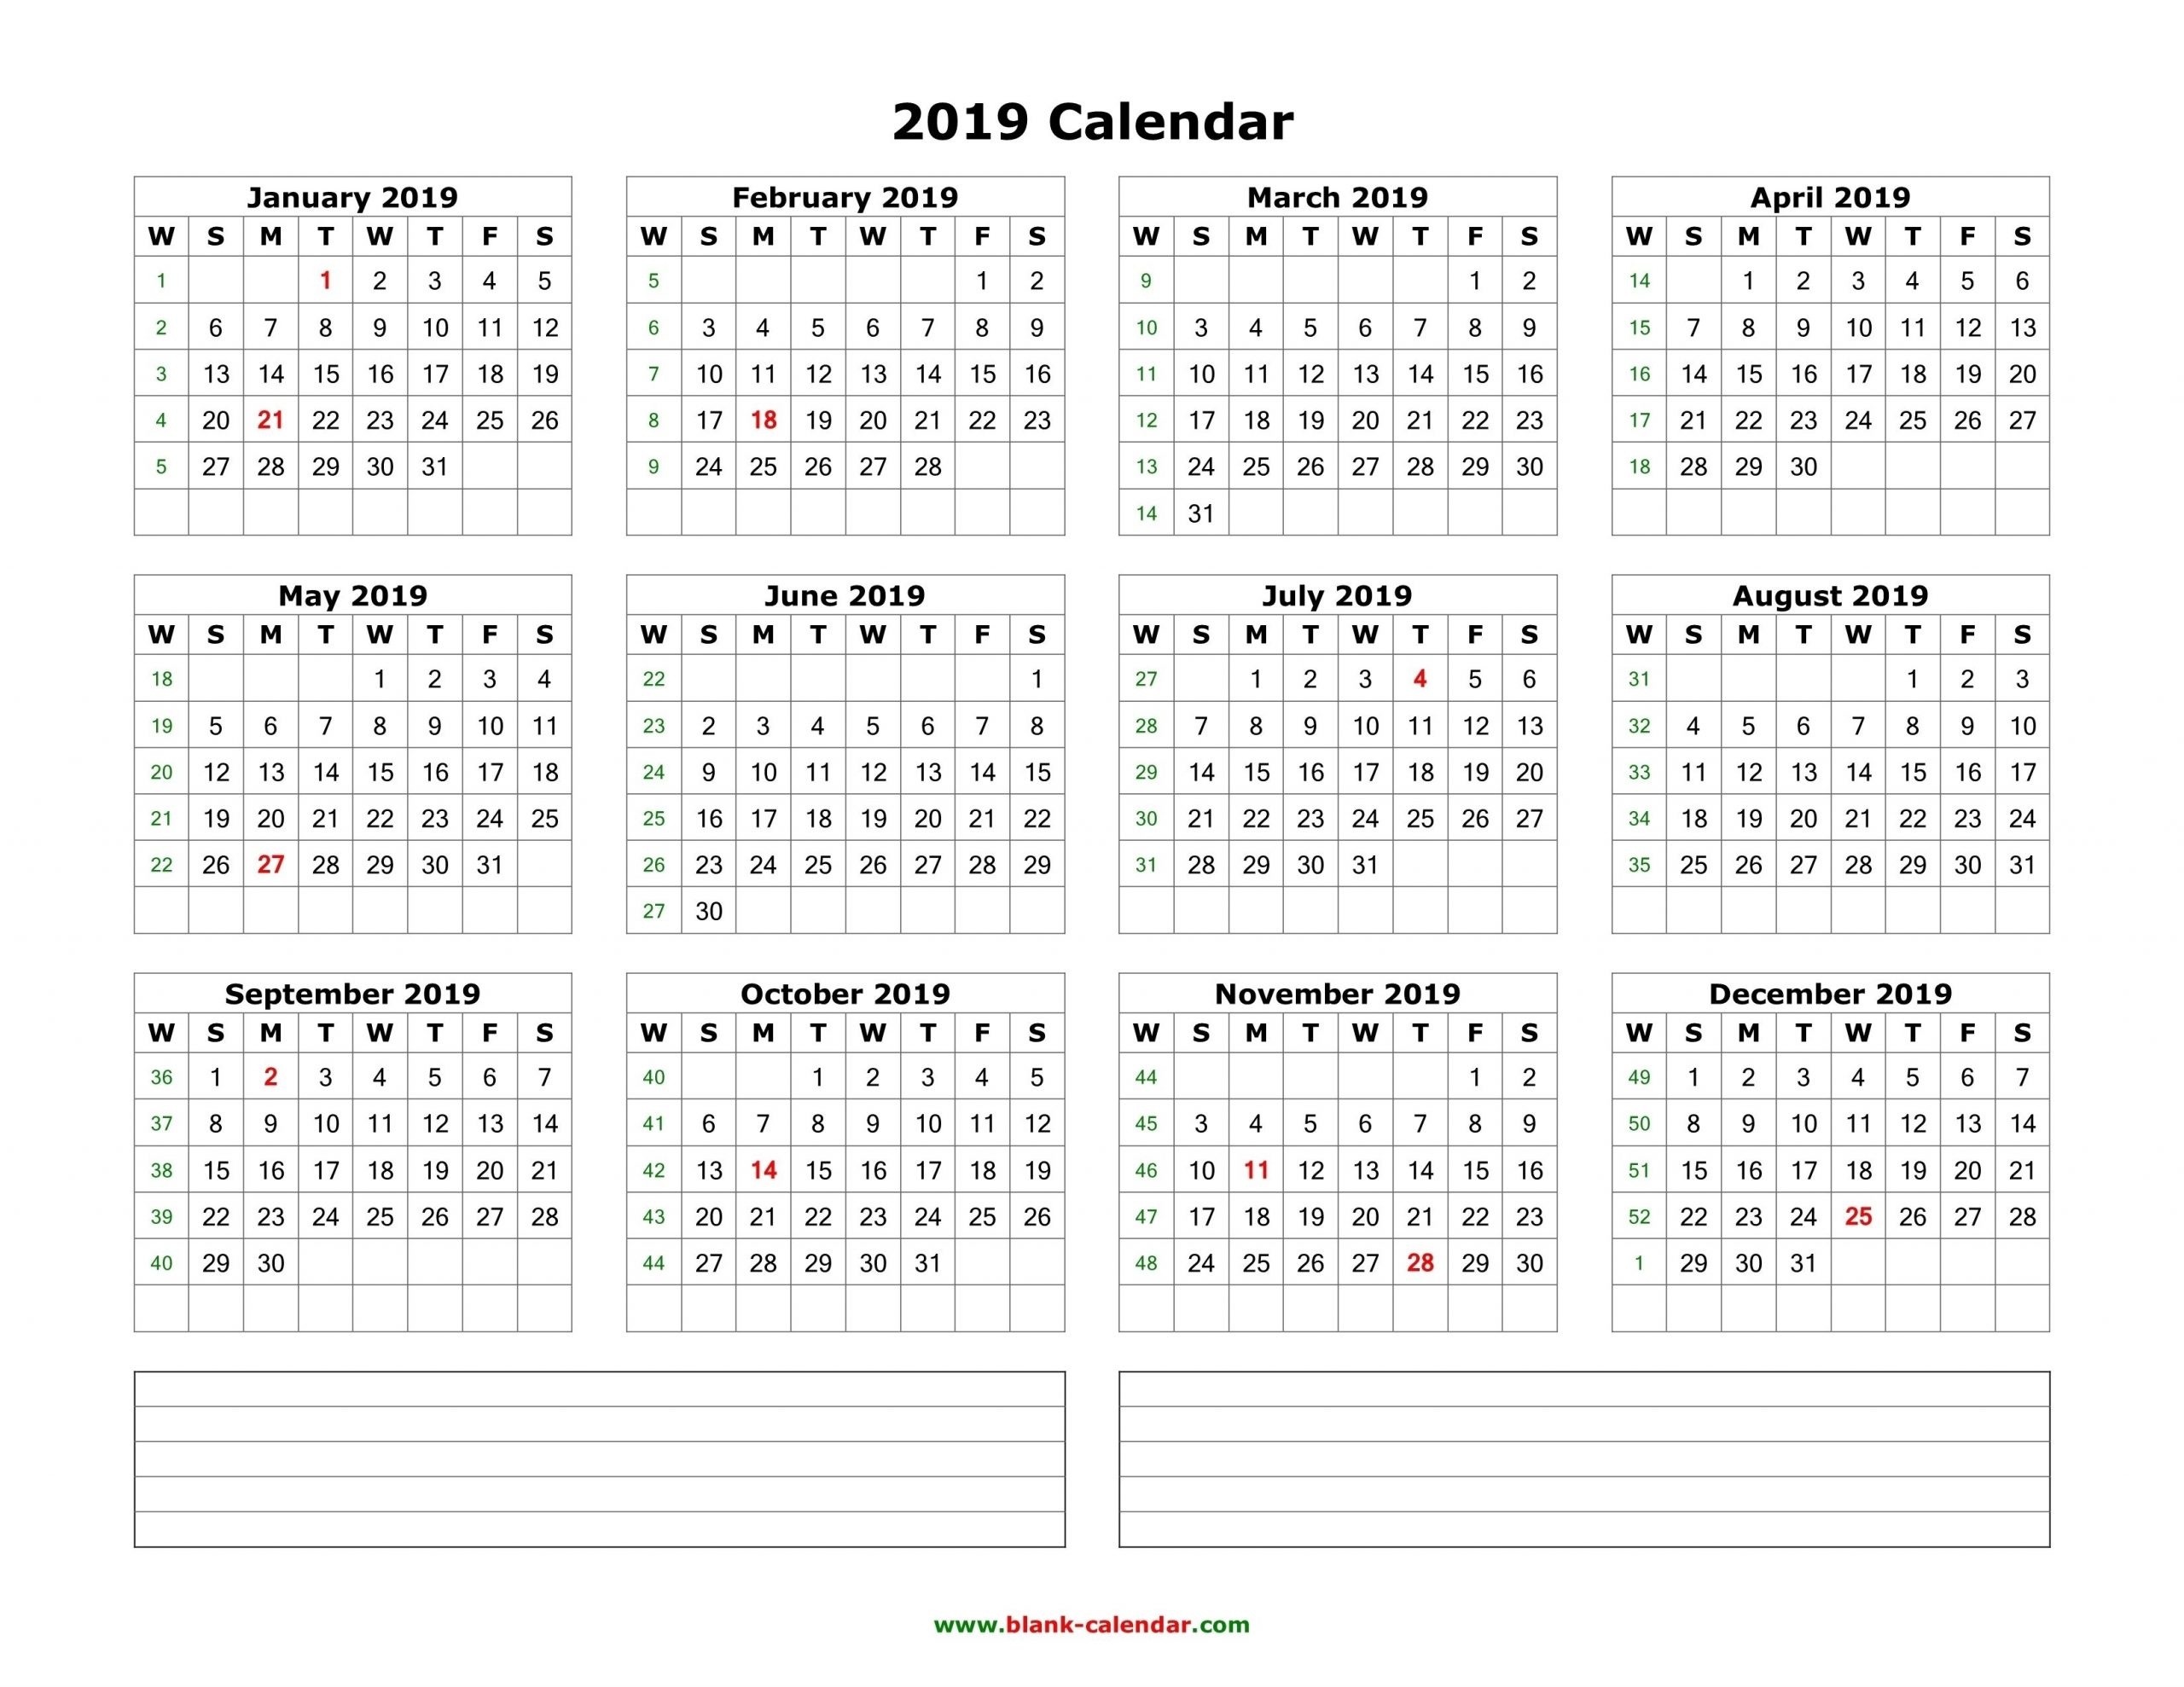 Download Blank Calendar 2019 With Space For Notes (12 Months in 2019 2020 Calendar Space To Write